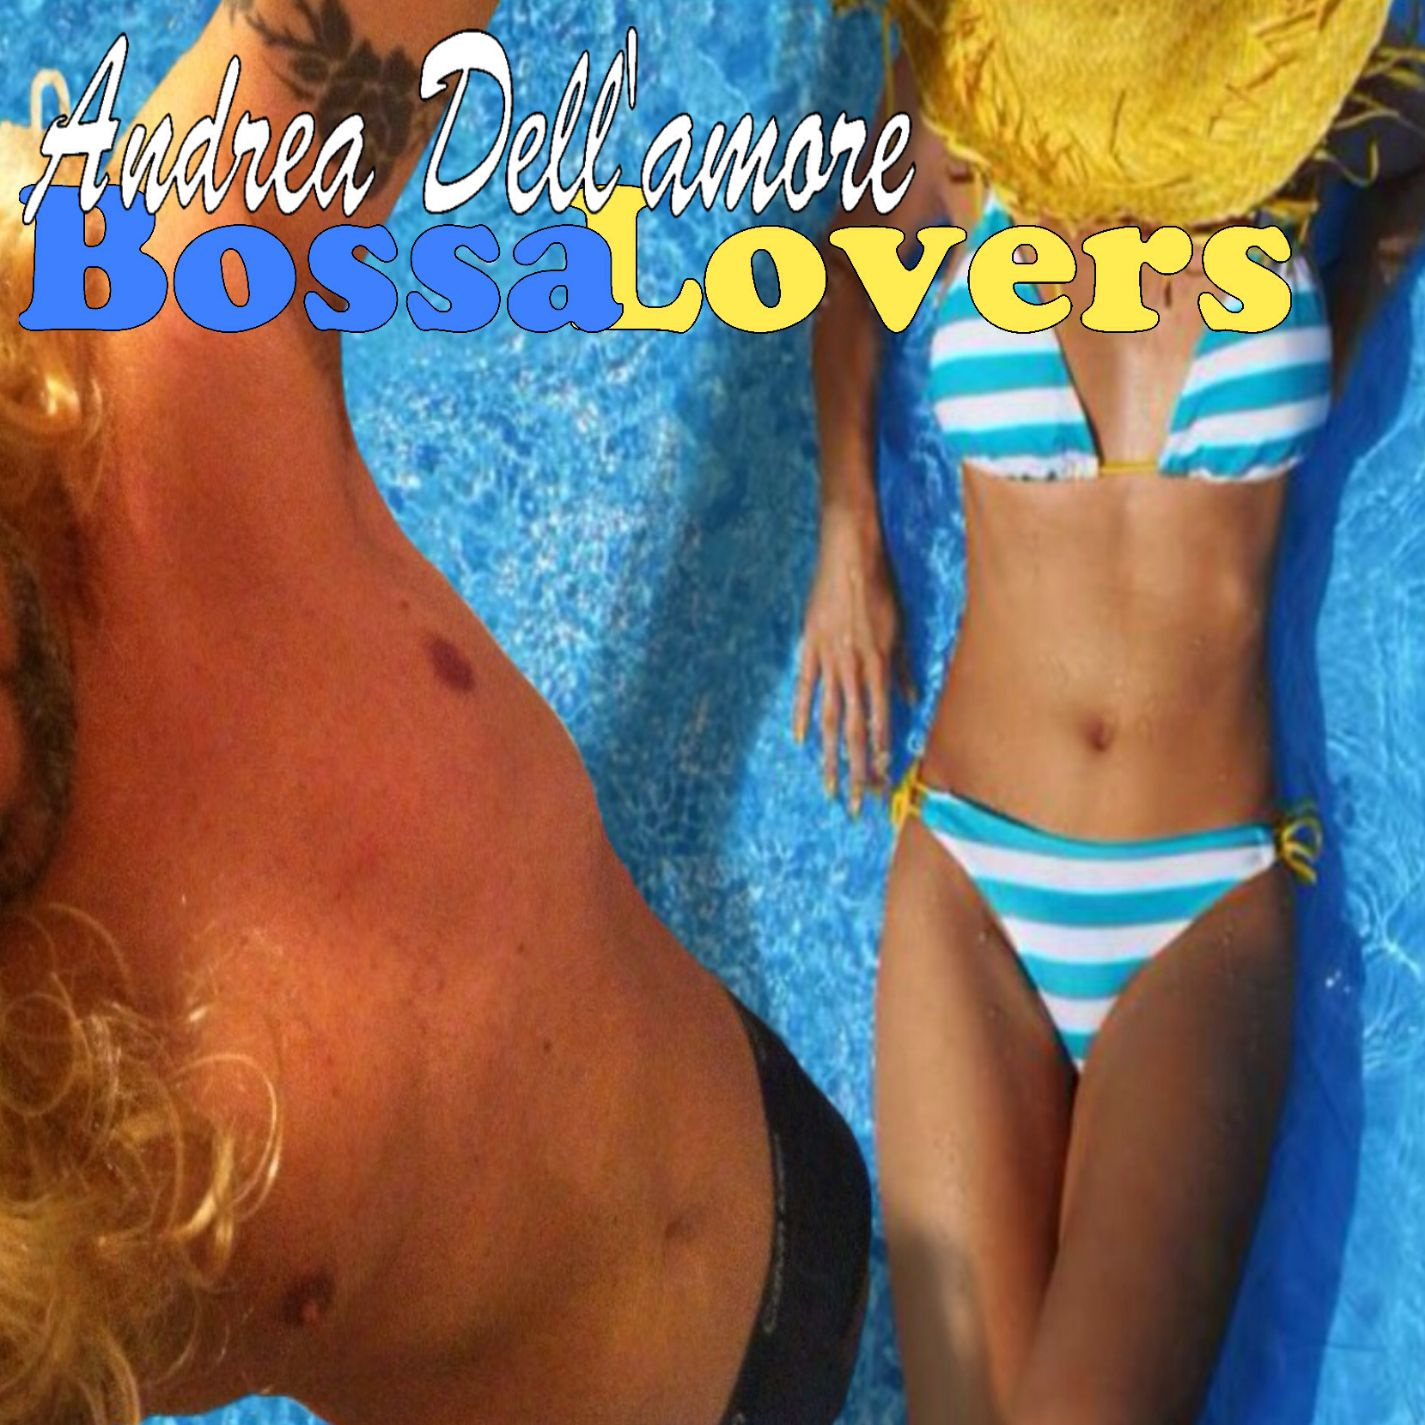 BOSSALOVERS - Andrea Dell'amore